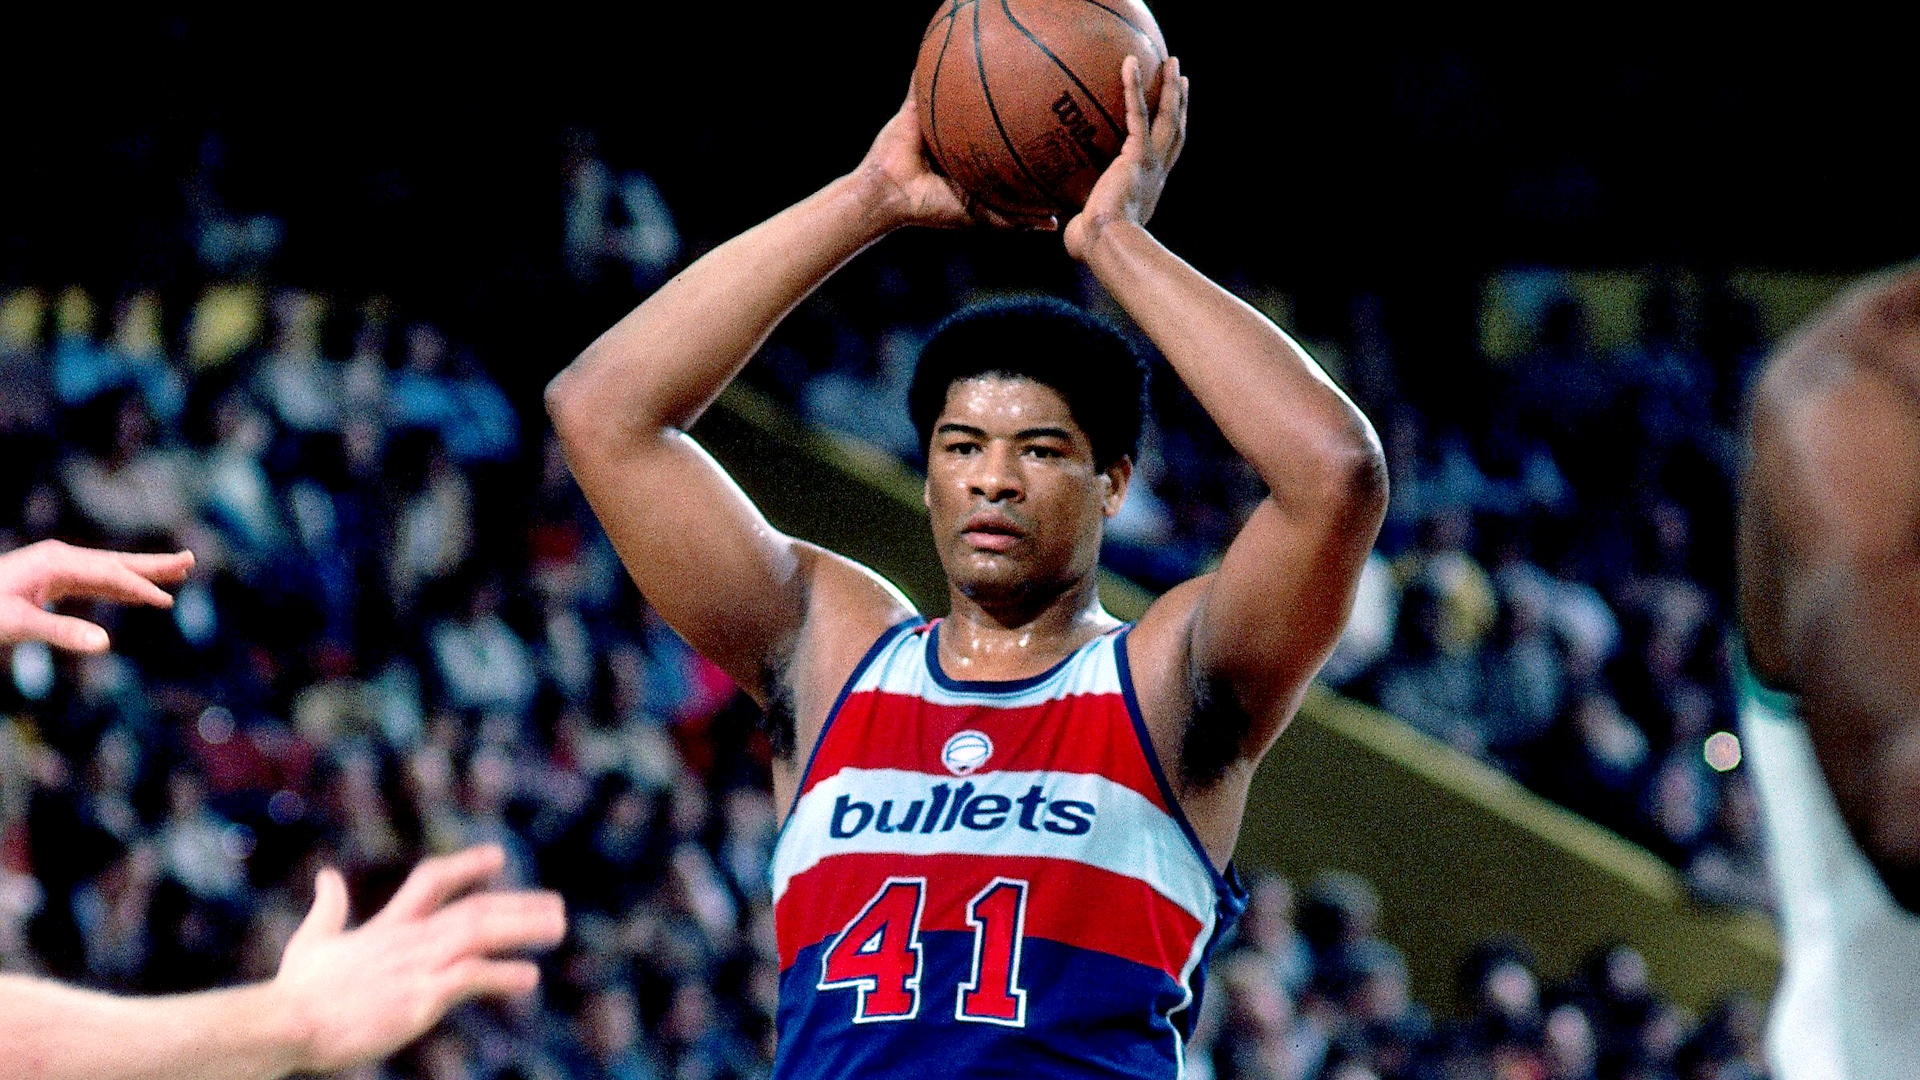 Washington Bullets legend Wes Unseld dead at 74